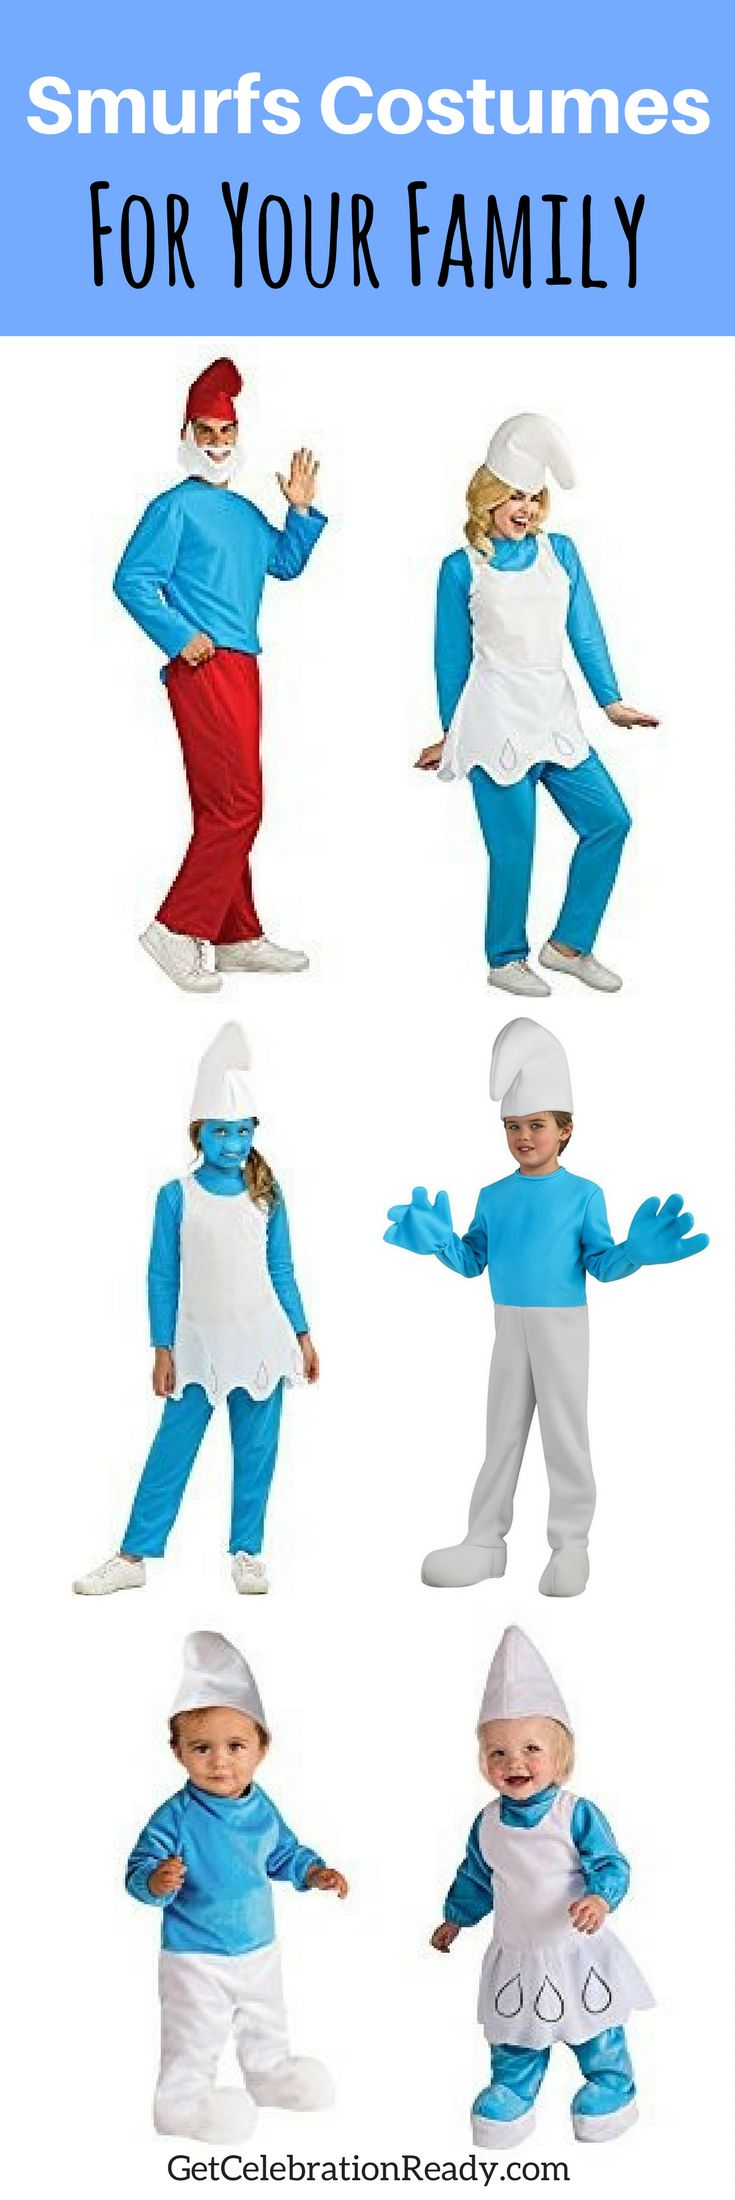 Smurfs costumes are great for groups or family. Smurfette is very popular this year but you can include all the other Smurfs too. Don't forget Papa Smurf! Smurfs are great for baby and toddler costumes too.